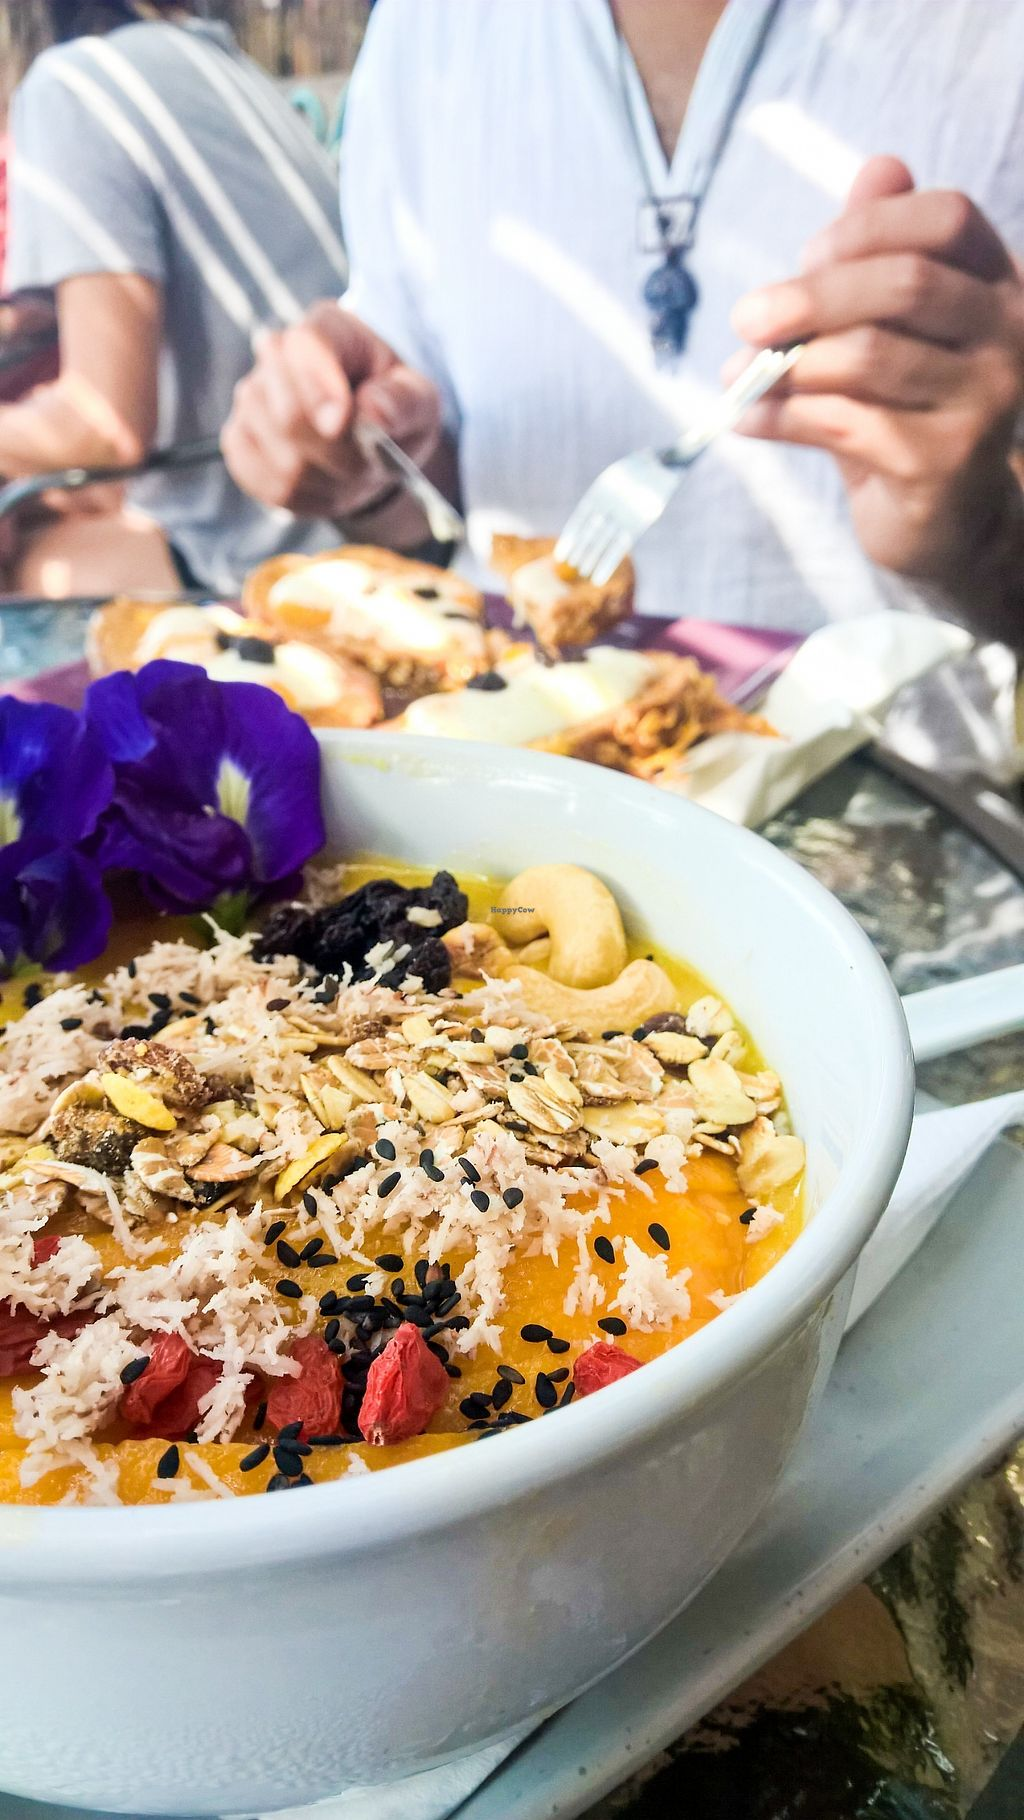 """Photo of Kaya Caffe  by <a href=""""/members/profile/tofu-n-beer"""">tofu-n-beer</a> <br/>Mango smoothie bowl <br/> December 16, 2017  - <a href='/contact/abuse/image/98208/336101'>Report</a>"""